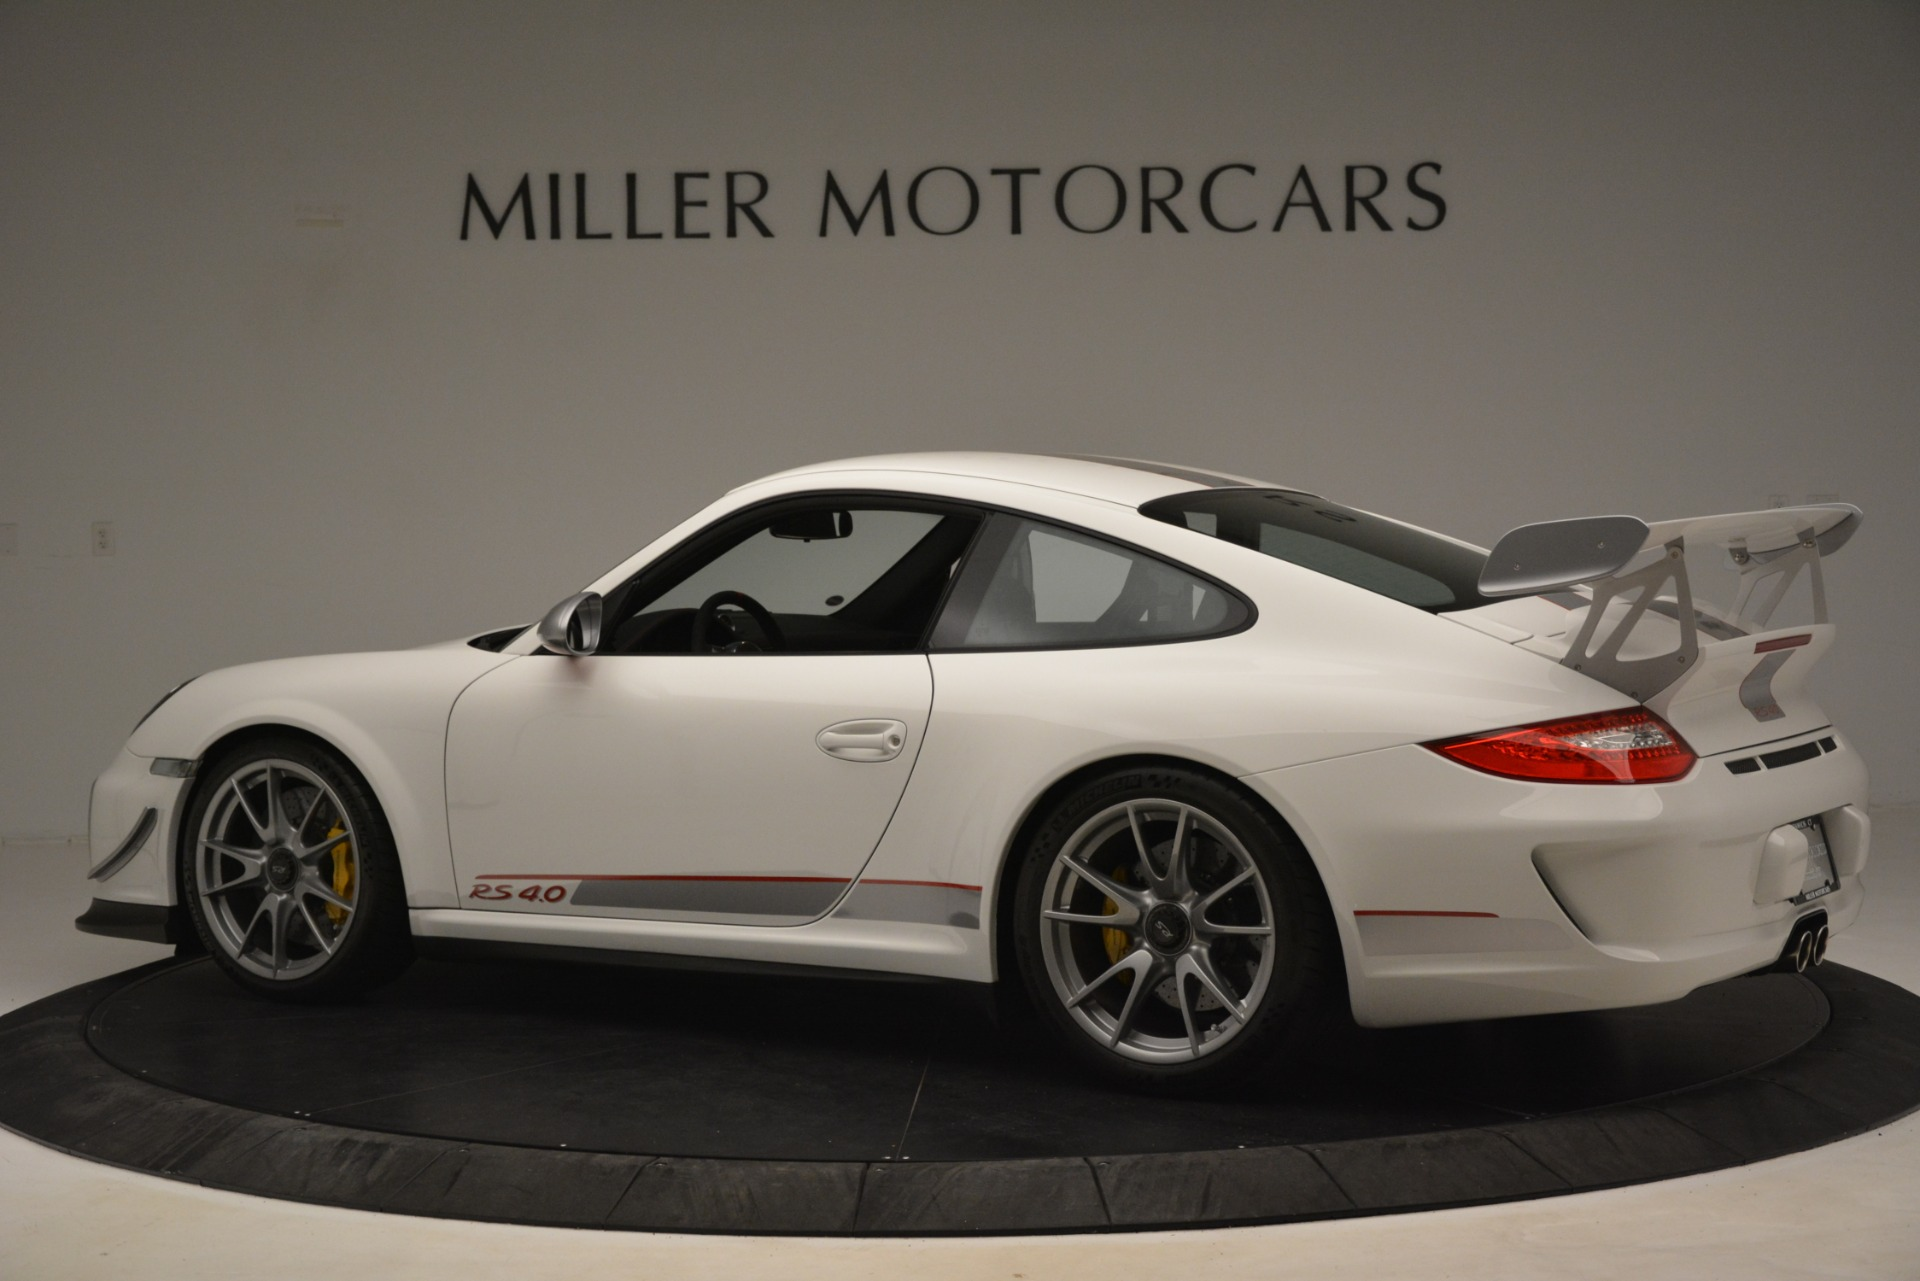 Used 2011 Porsche 911 GT3 RS 4.0 For Sale In Westport, CT 3188_p4